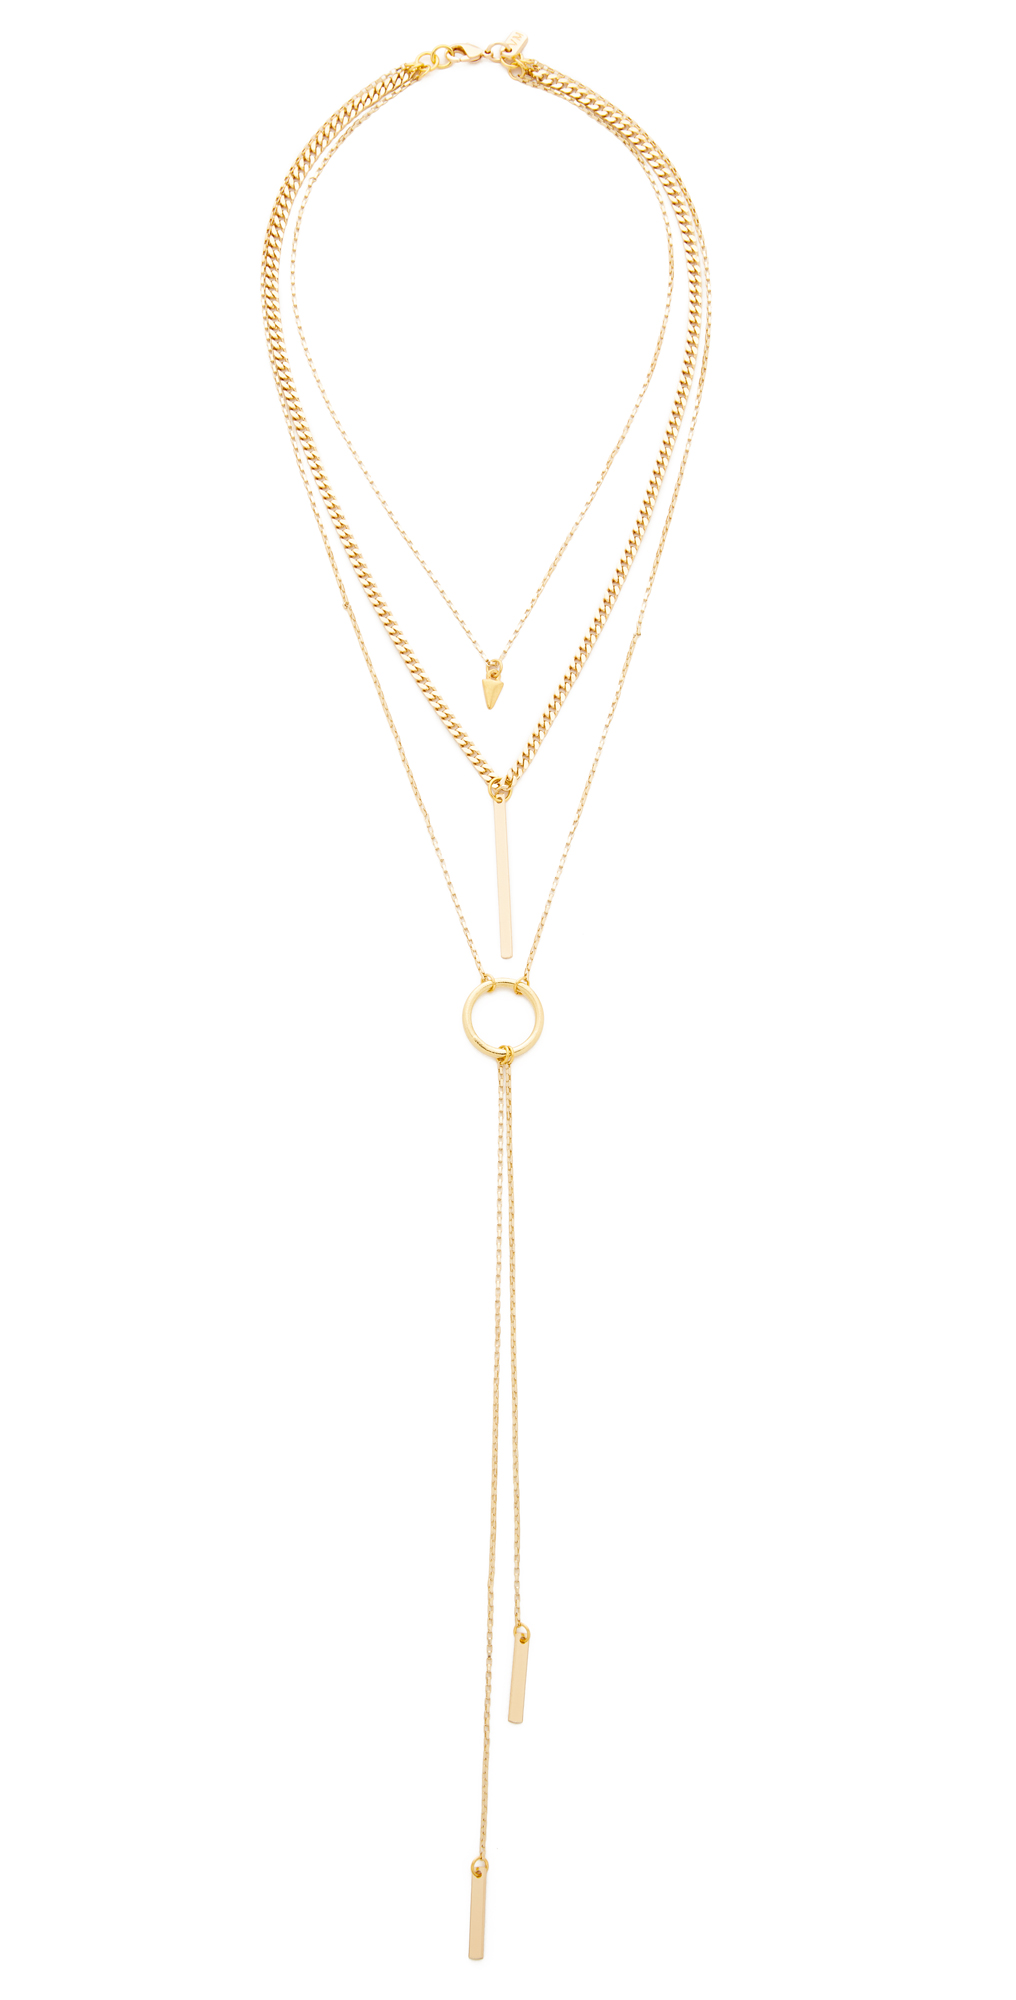 The Juno Triple Chain Necklace Vanessa Mooney